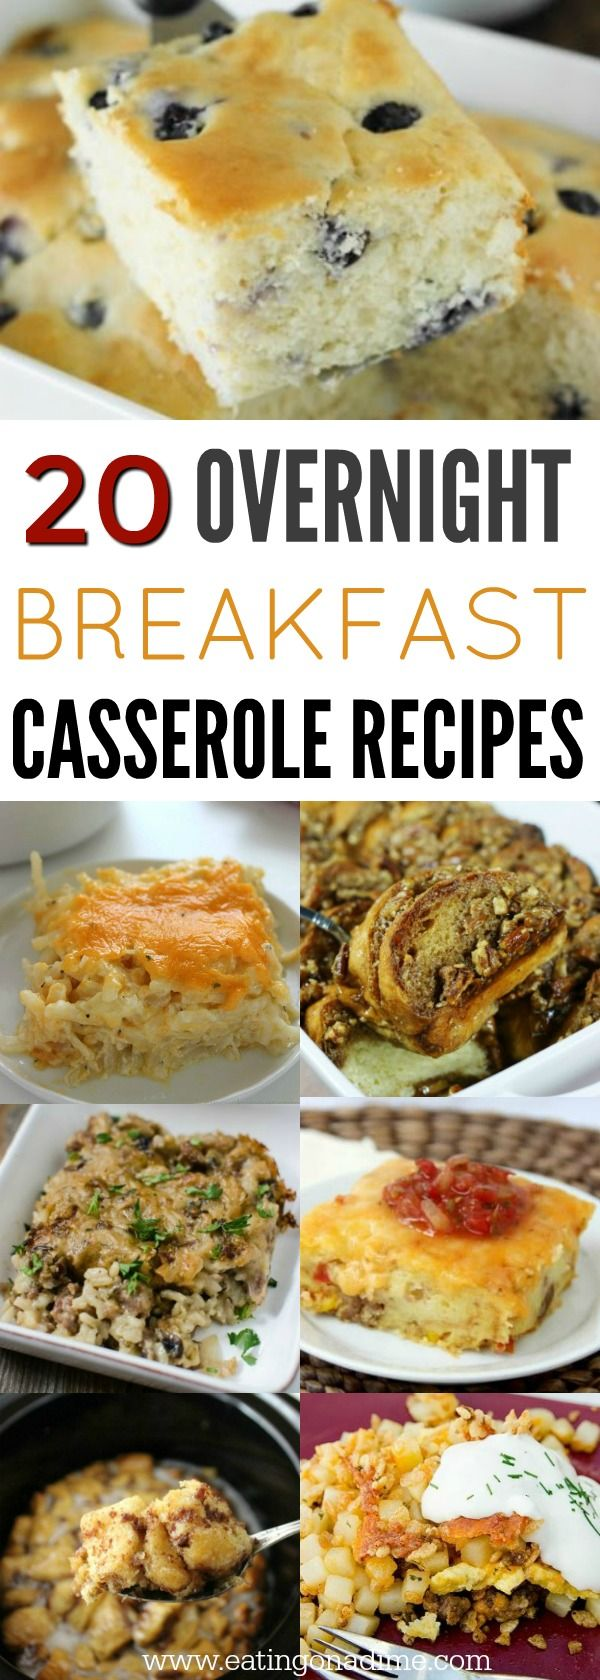 You will love these overnight breakfast casserole recipes. 20 make ahead breakfast casserole recipes to make mornings a breeze. They are so delicious!